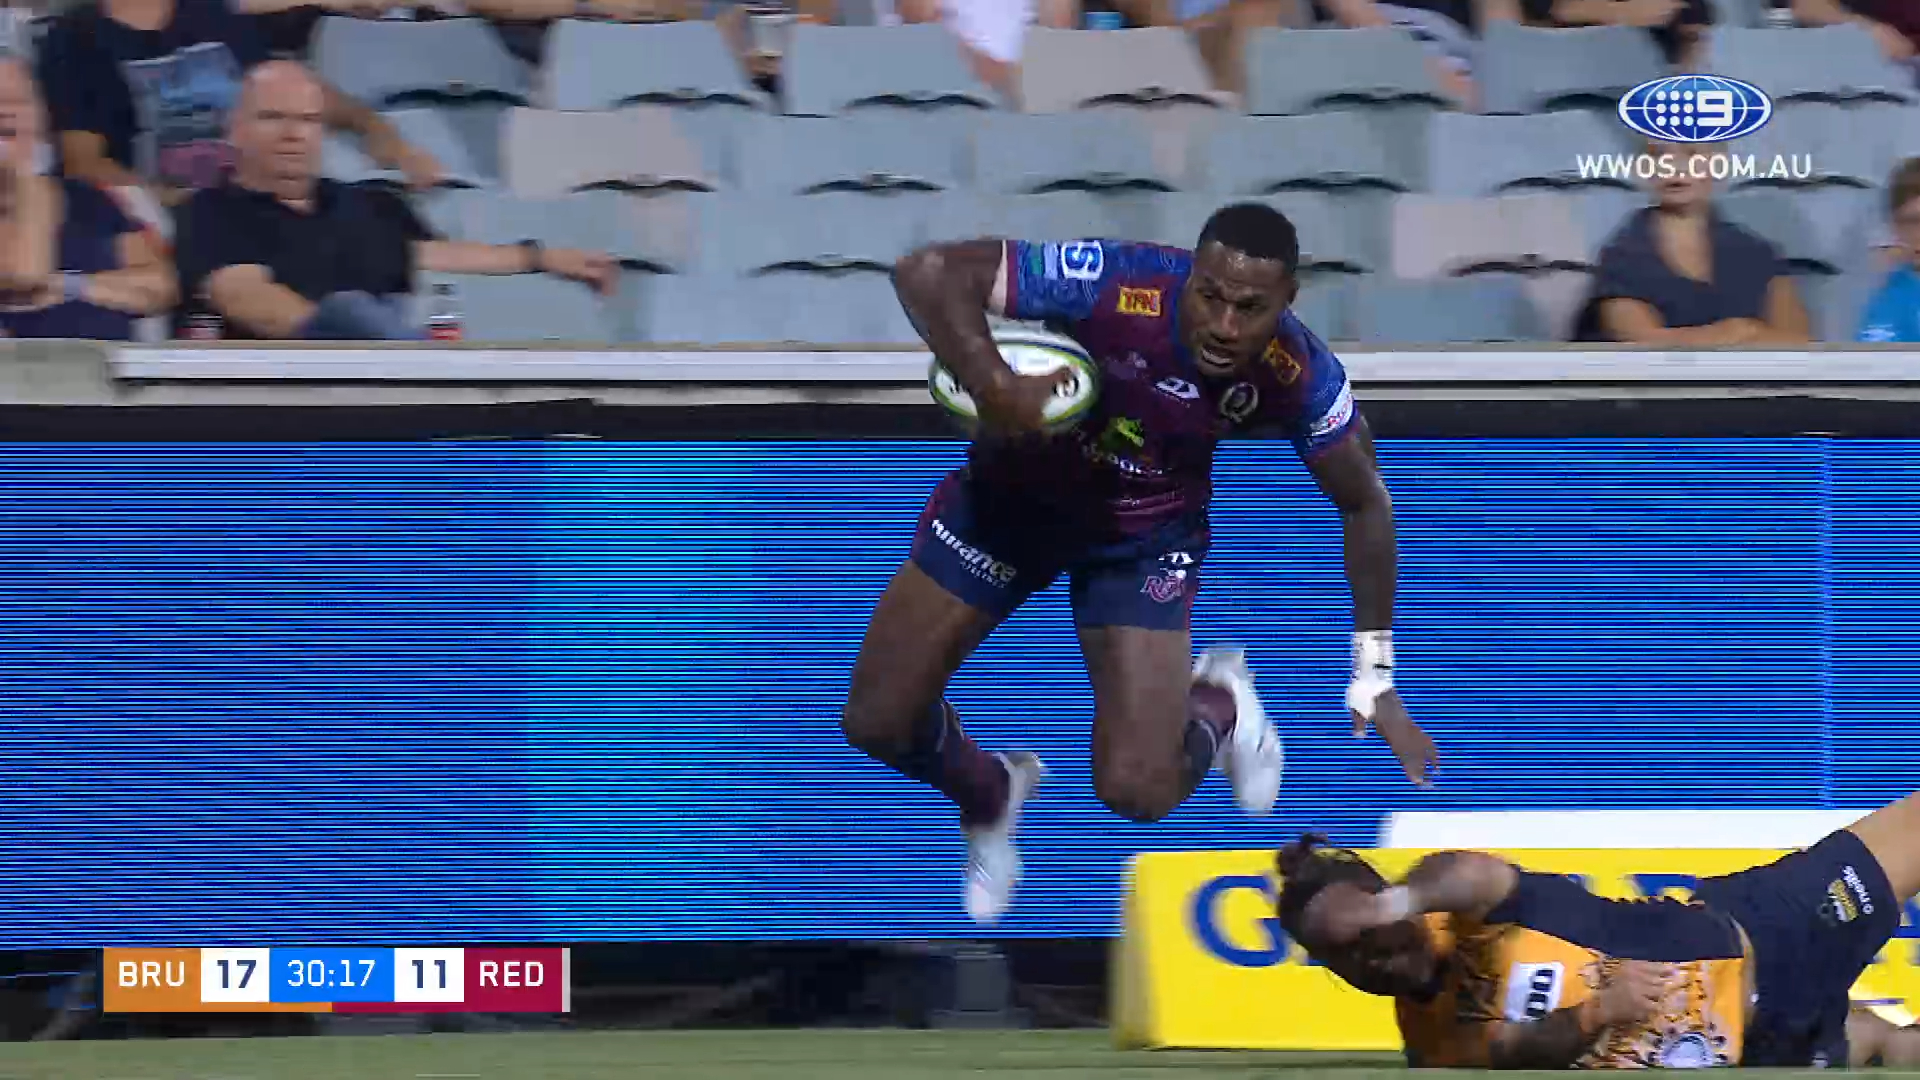 Vunivalu's first Super Rugby try